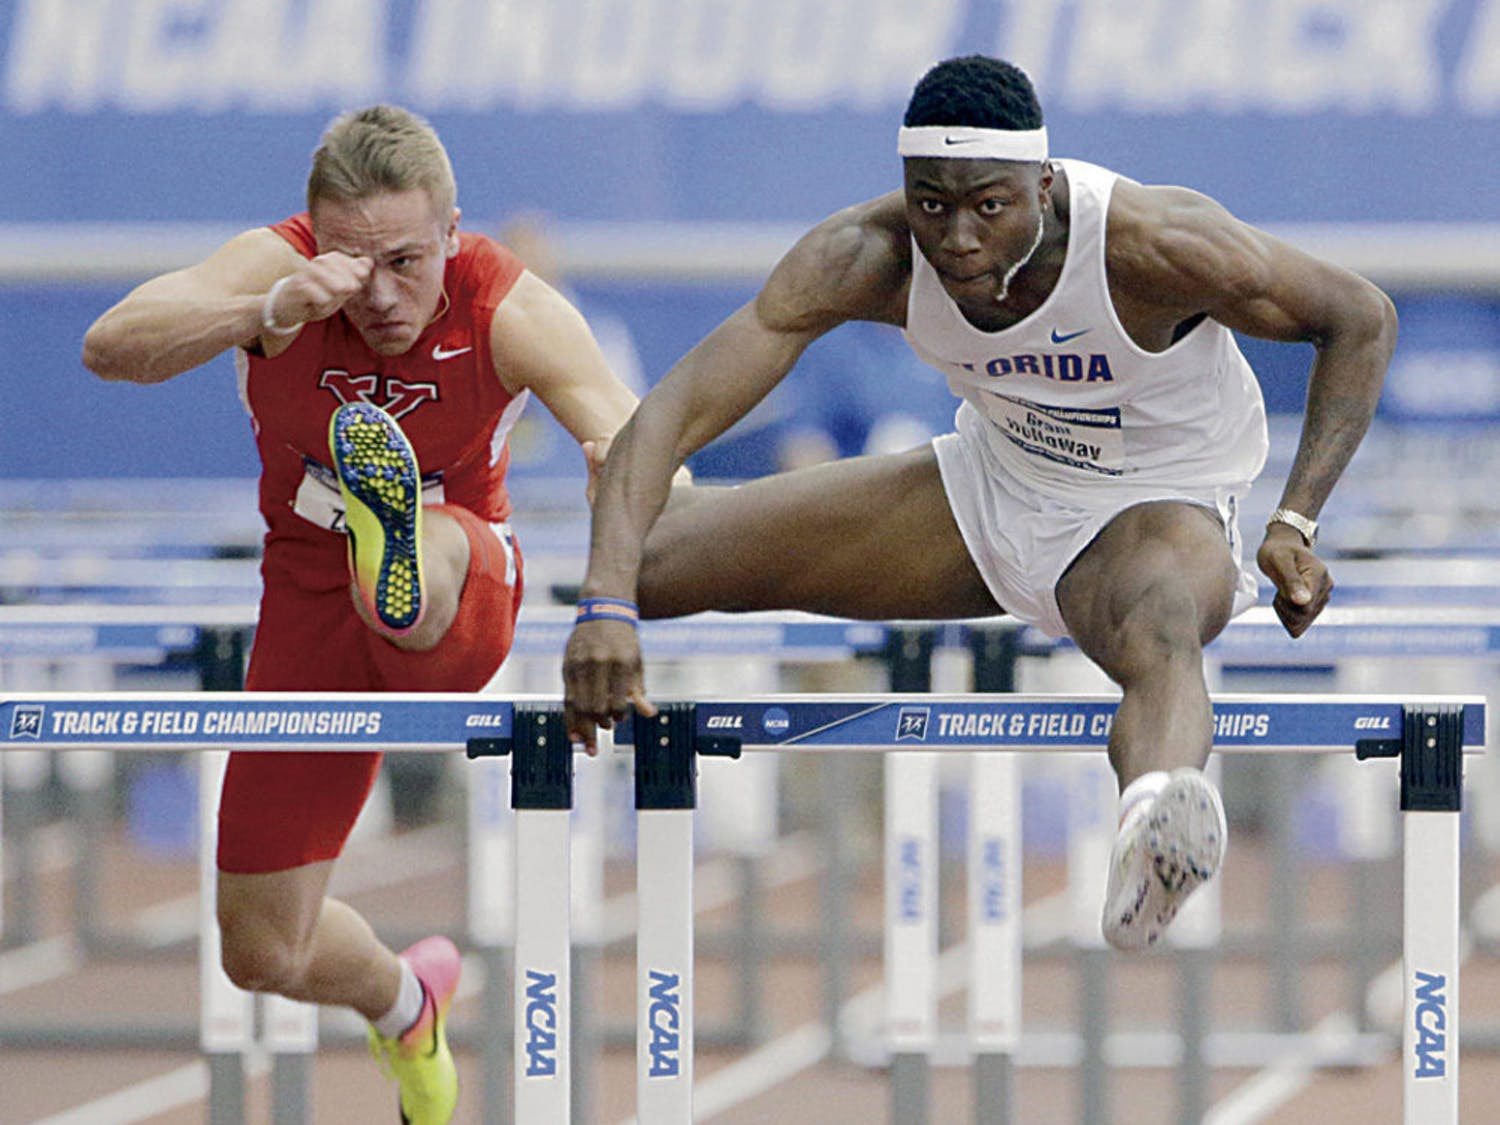 Sophomore Grant Holloway earned his second SEC 60-meter hurdles title in as many years on Sunday.